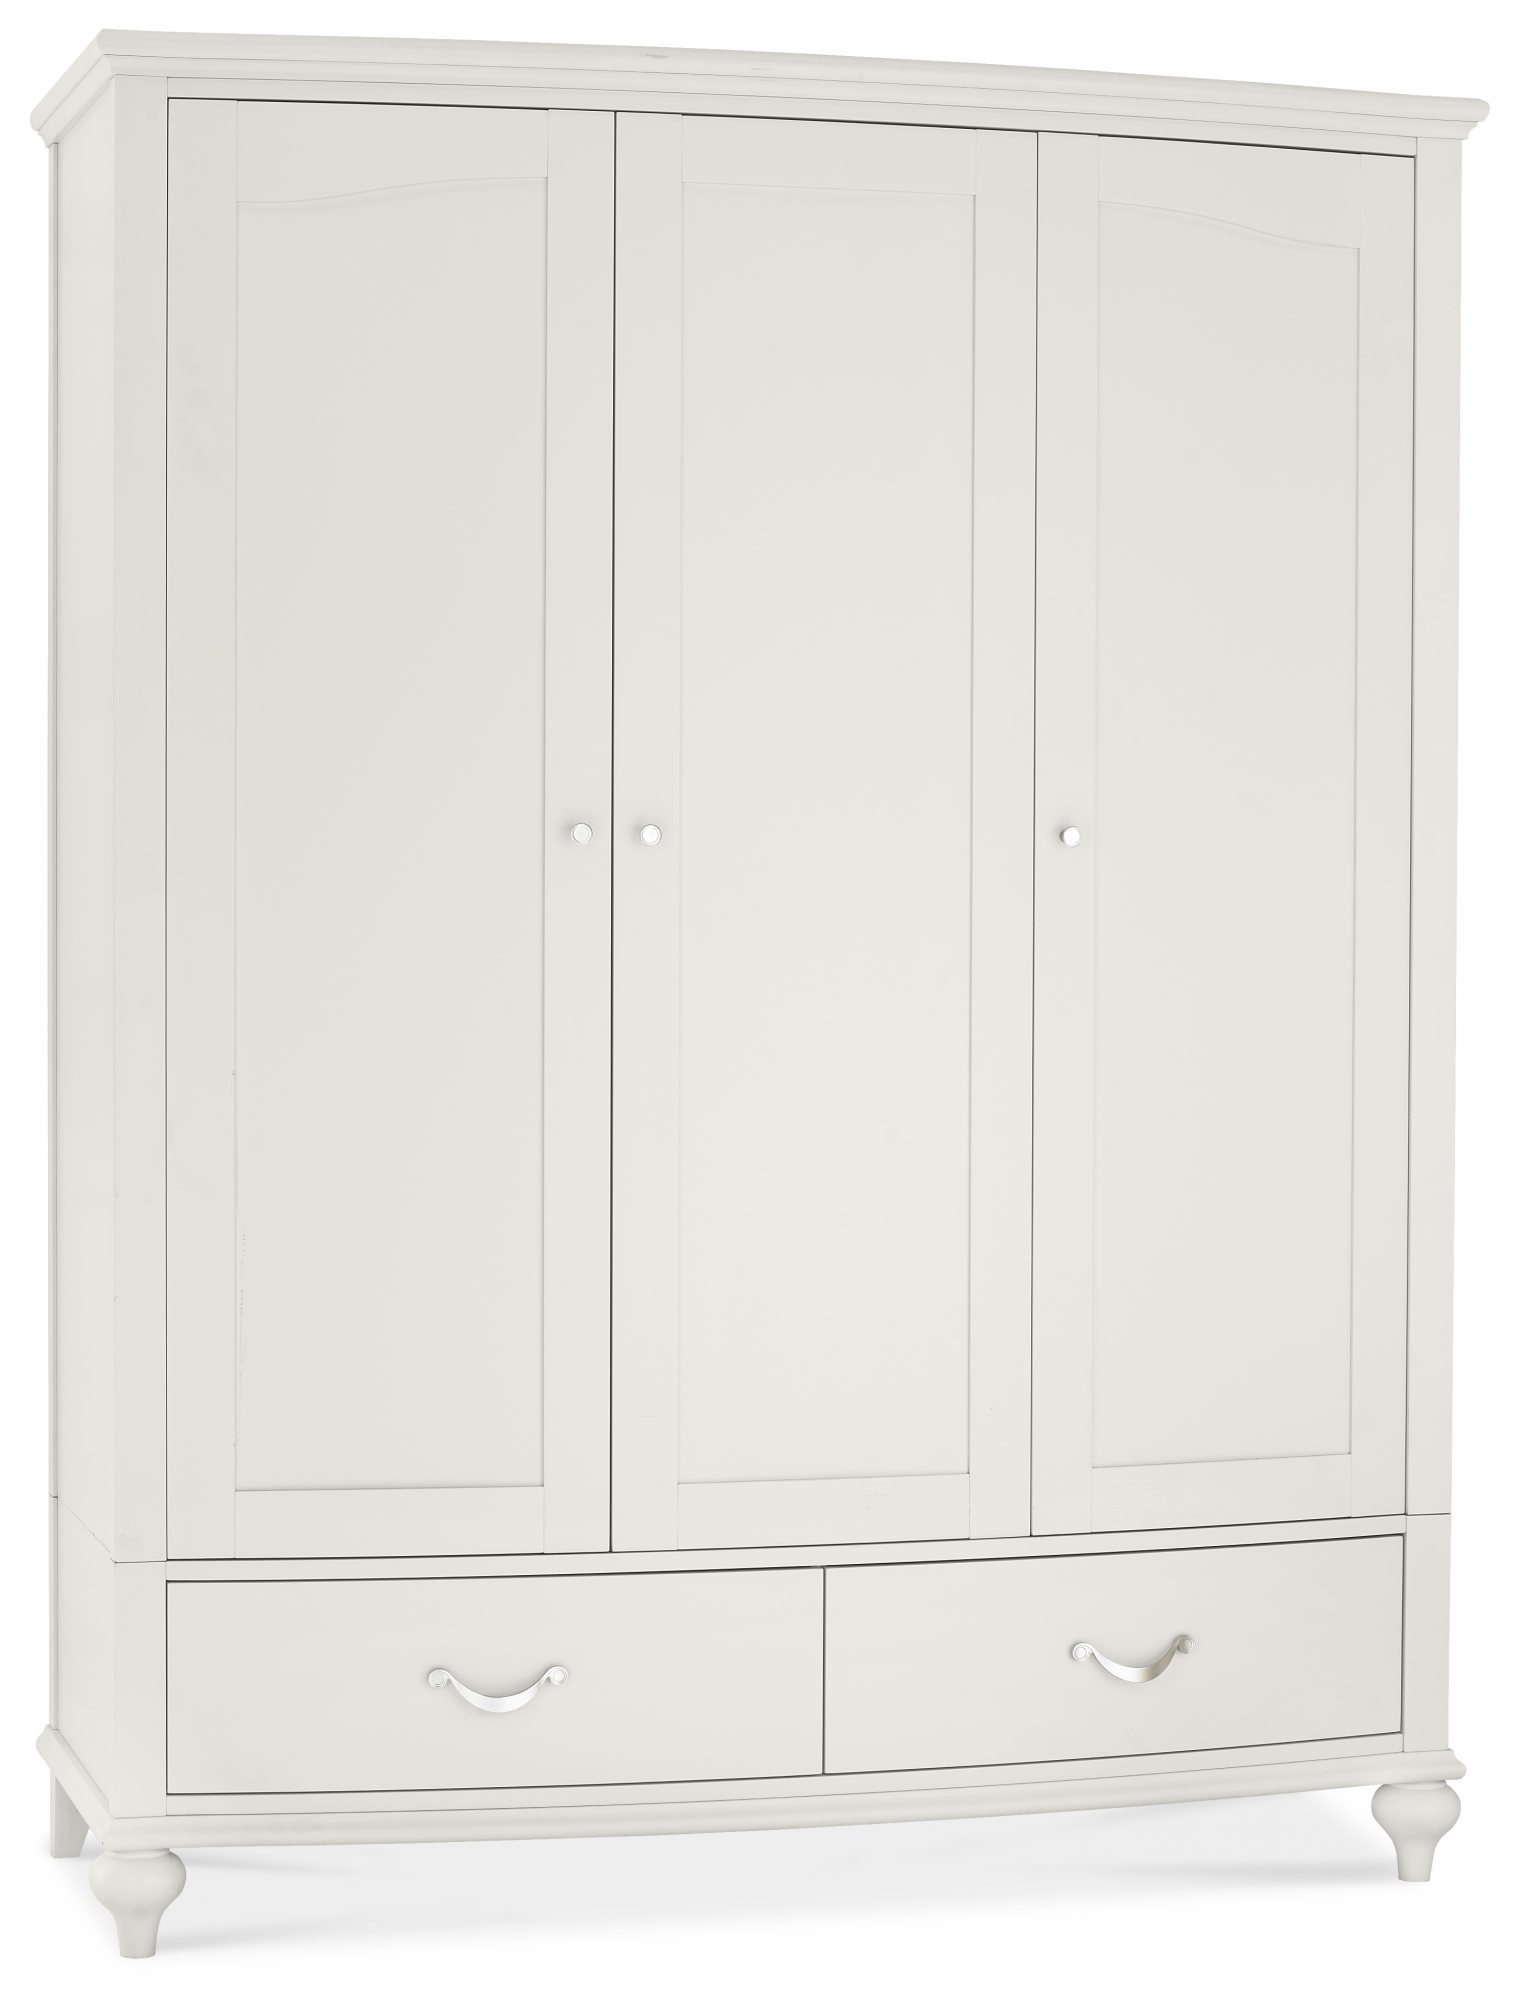 MONICA GREY TRIPLE WARDROBE - ANGLE DETAIL